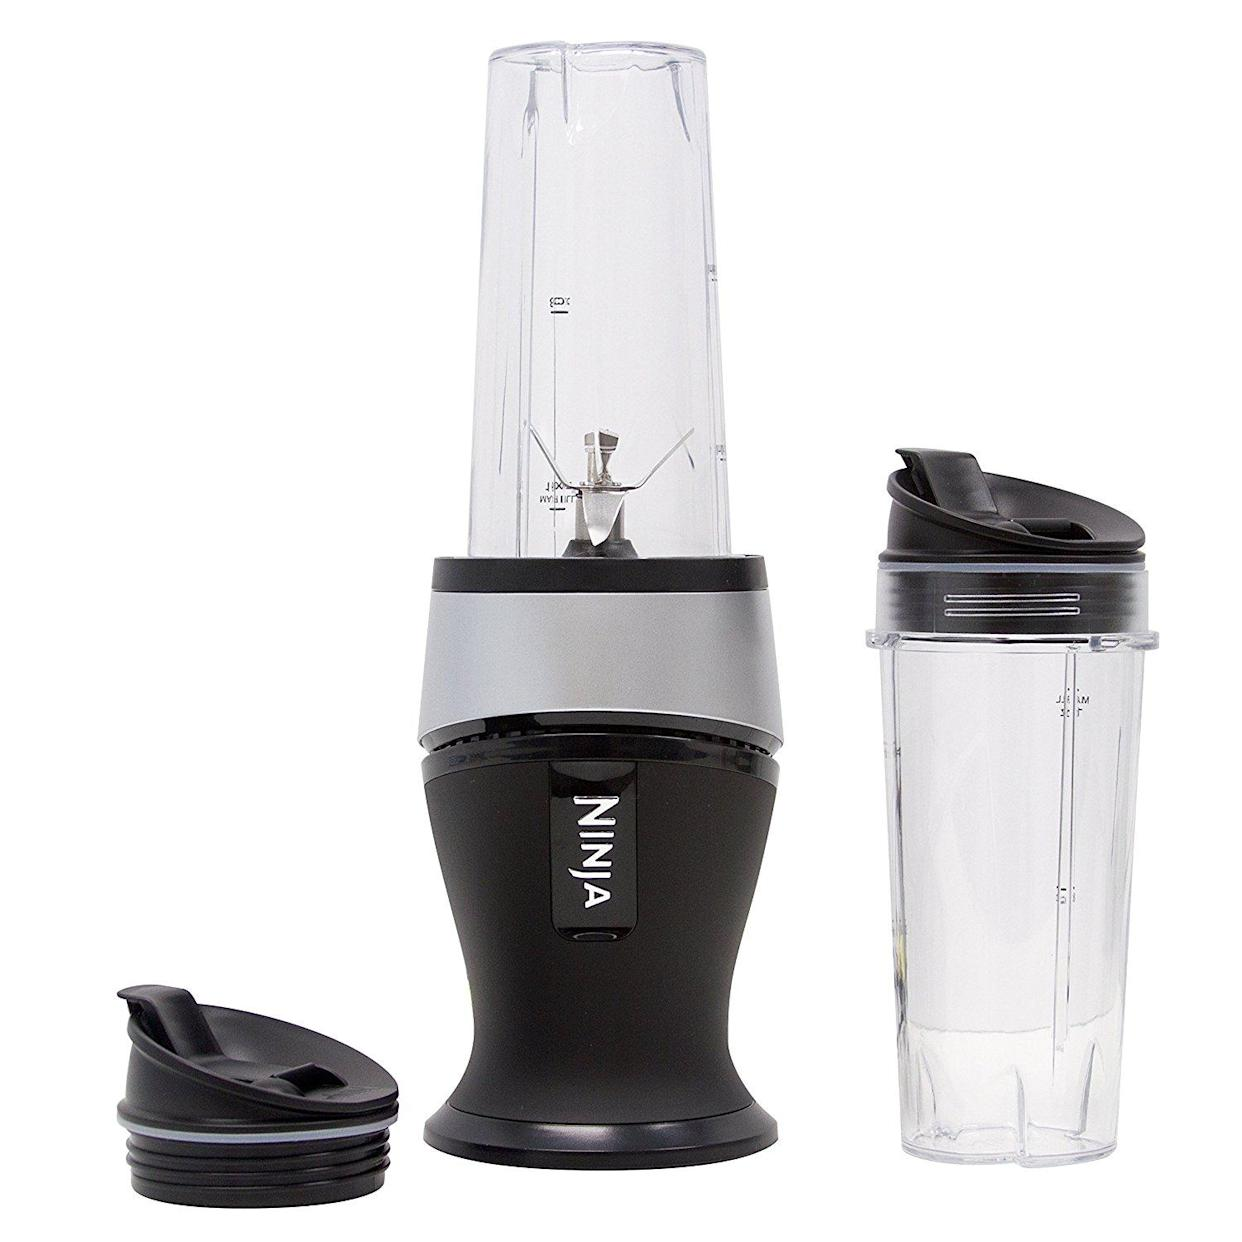 The blender comes with two 16-oz lidded cups, perfect for on-the-go sipping. (Photo: Walmart)